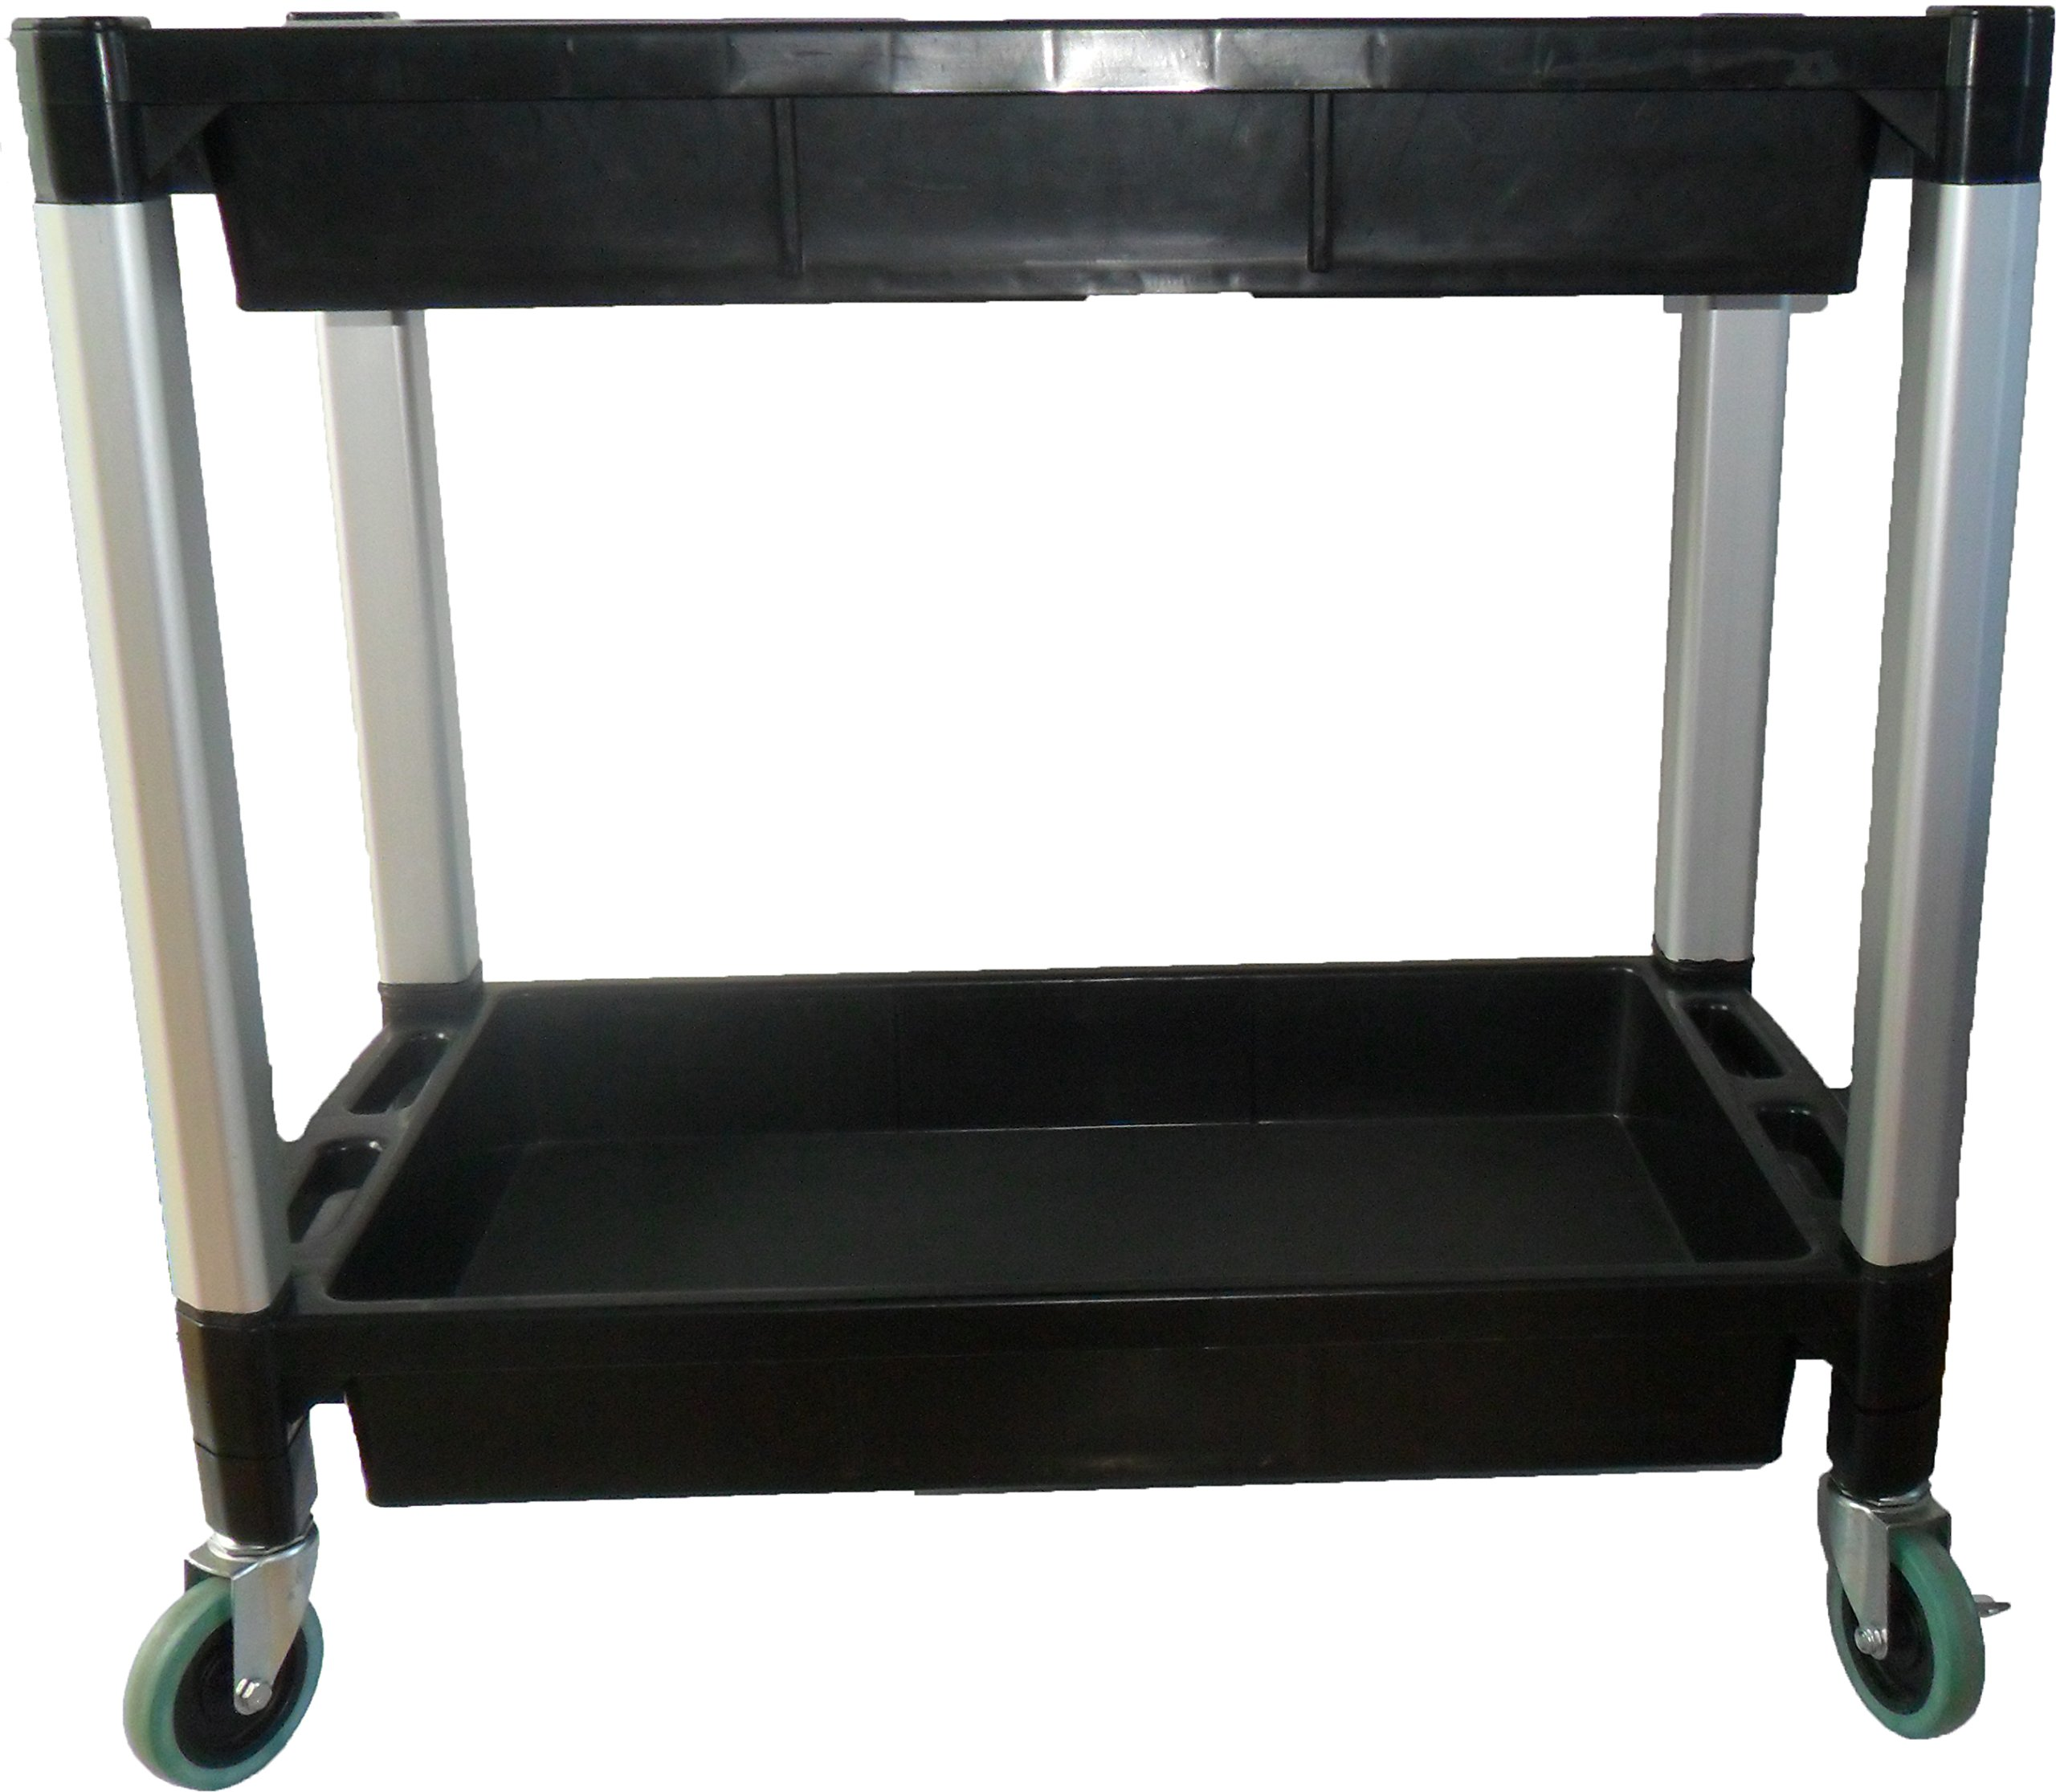 MaxWorks 80384 Black and Gray Two-Tray Service/Utility Cart With Aluminum Legs And 4'' Diameter Swivel Castors by MaxWorks (Image #4)